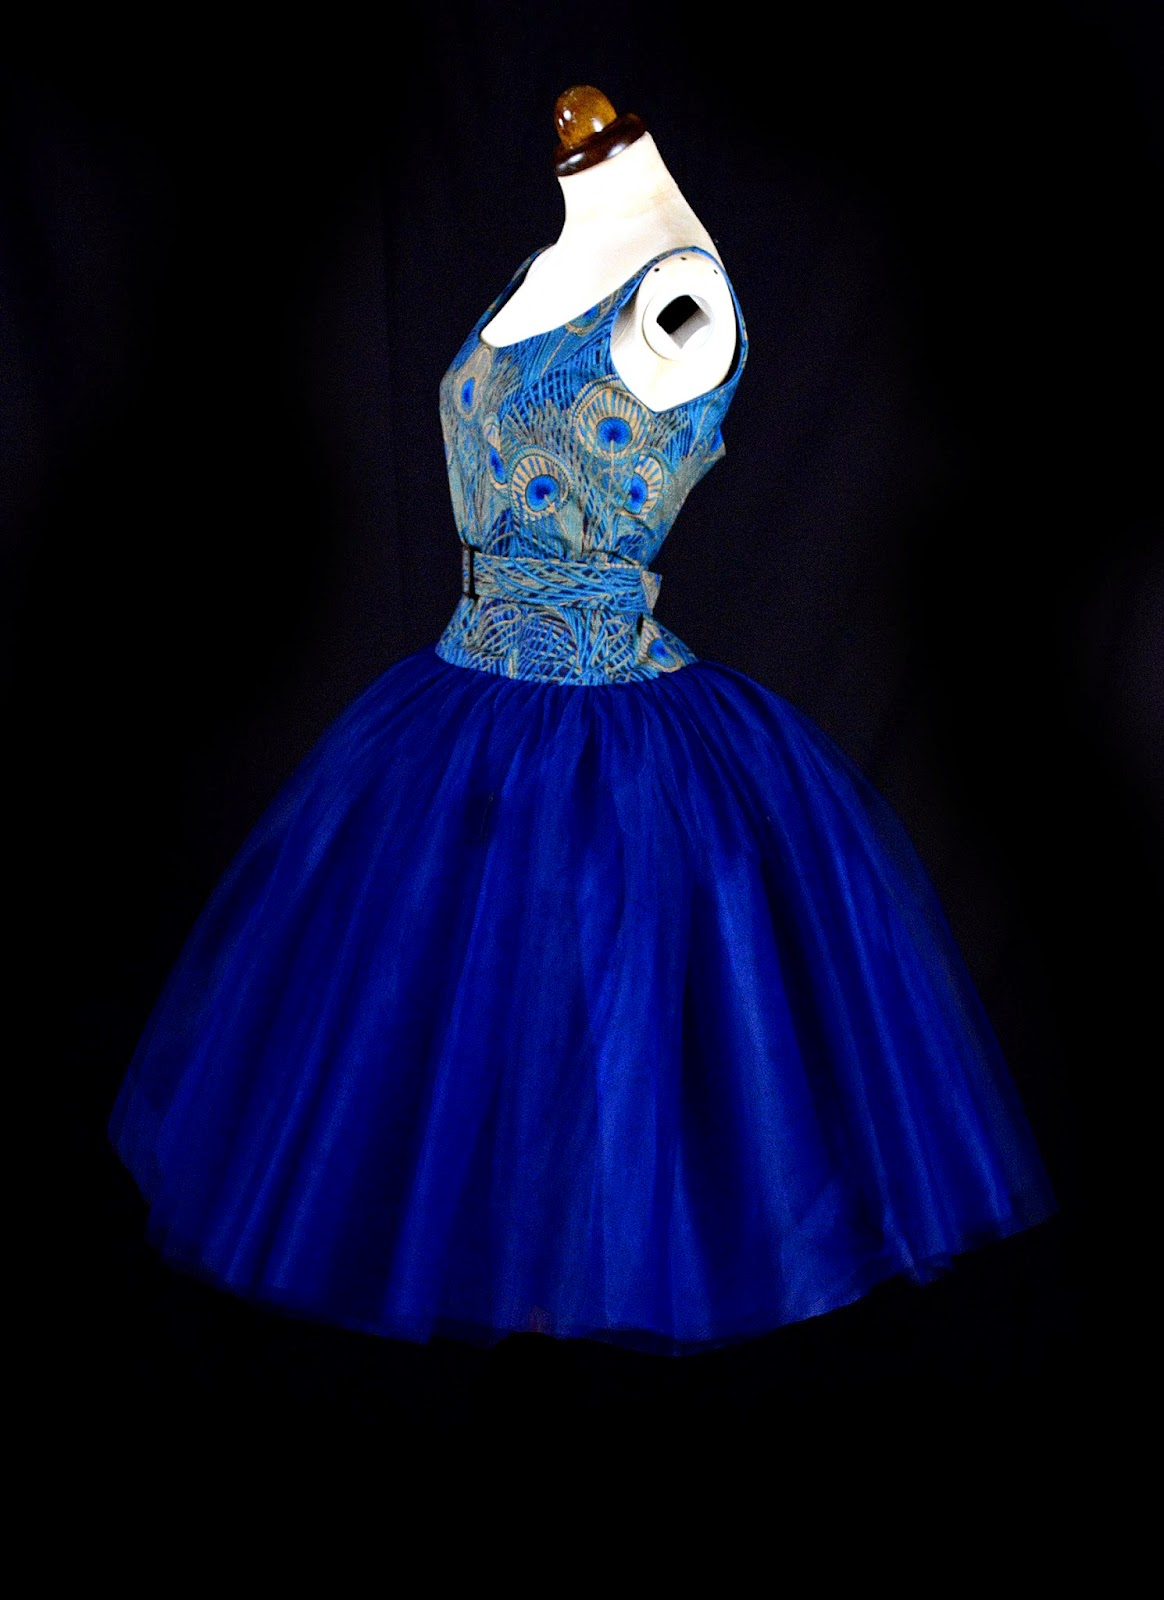 Alexandra King peacock dress